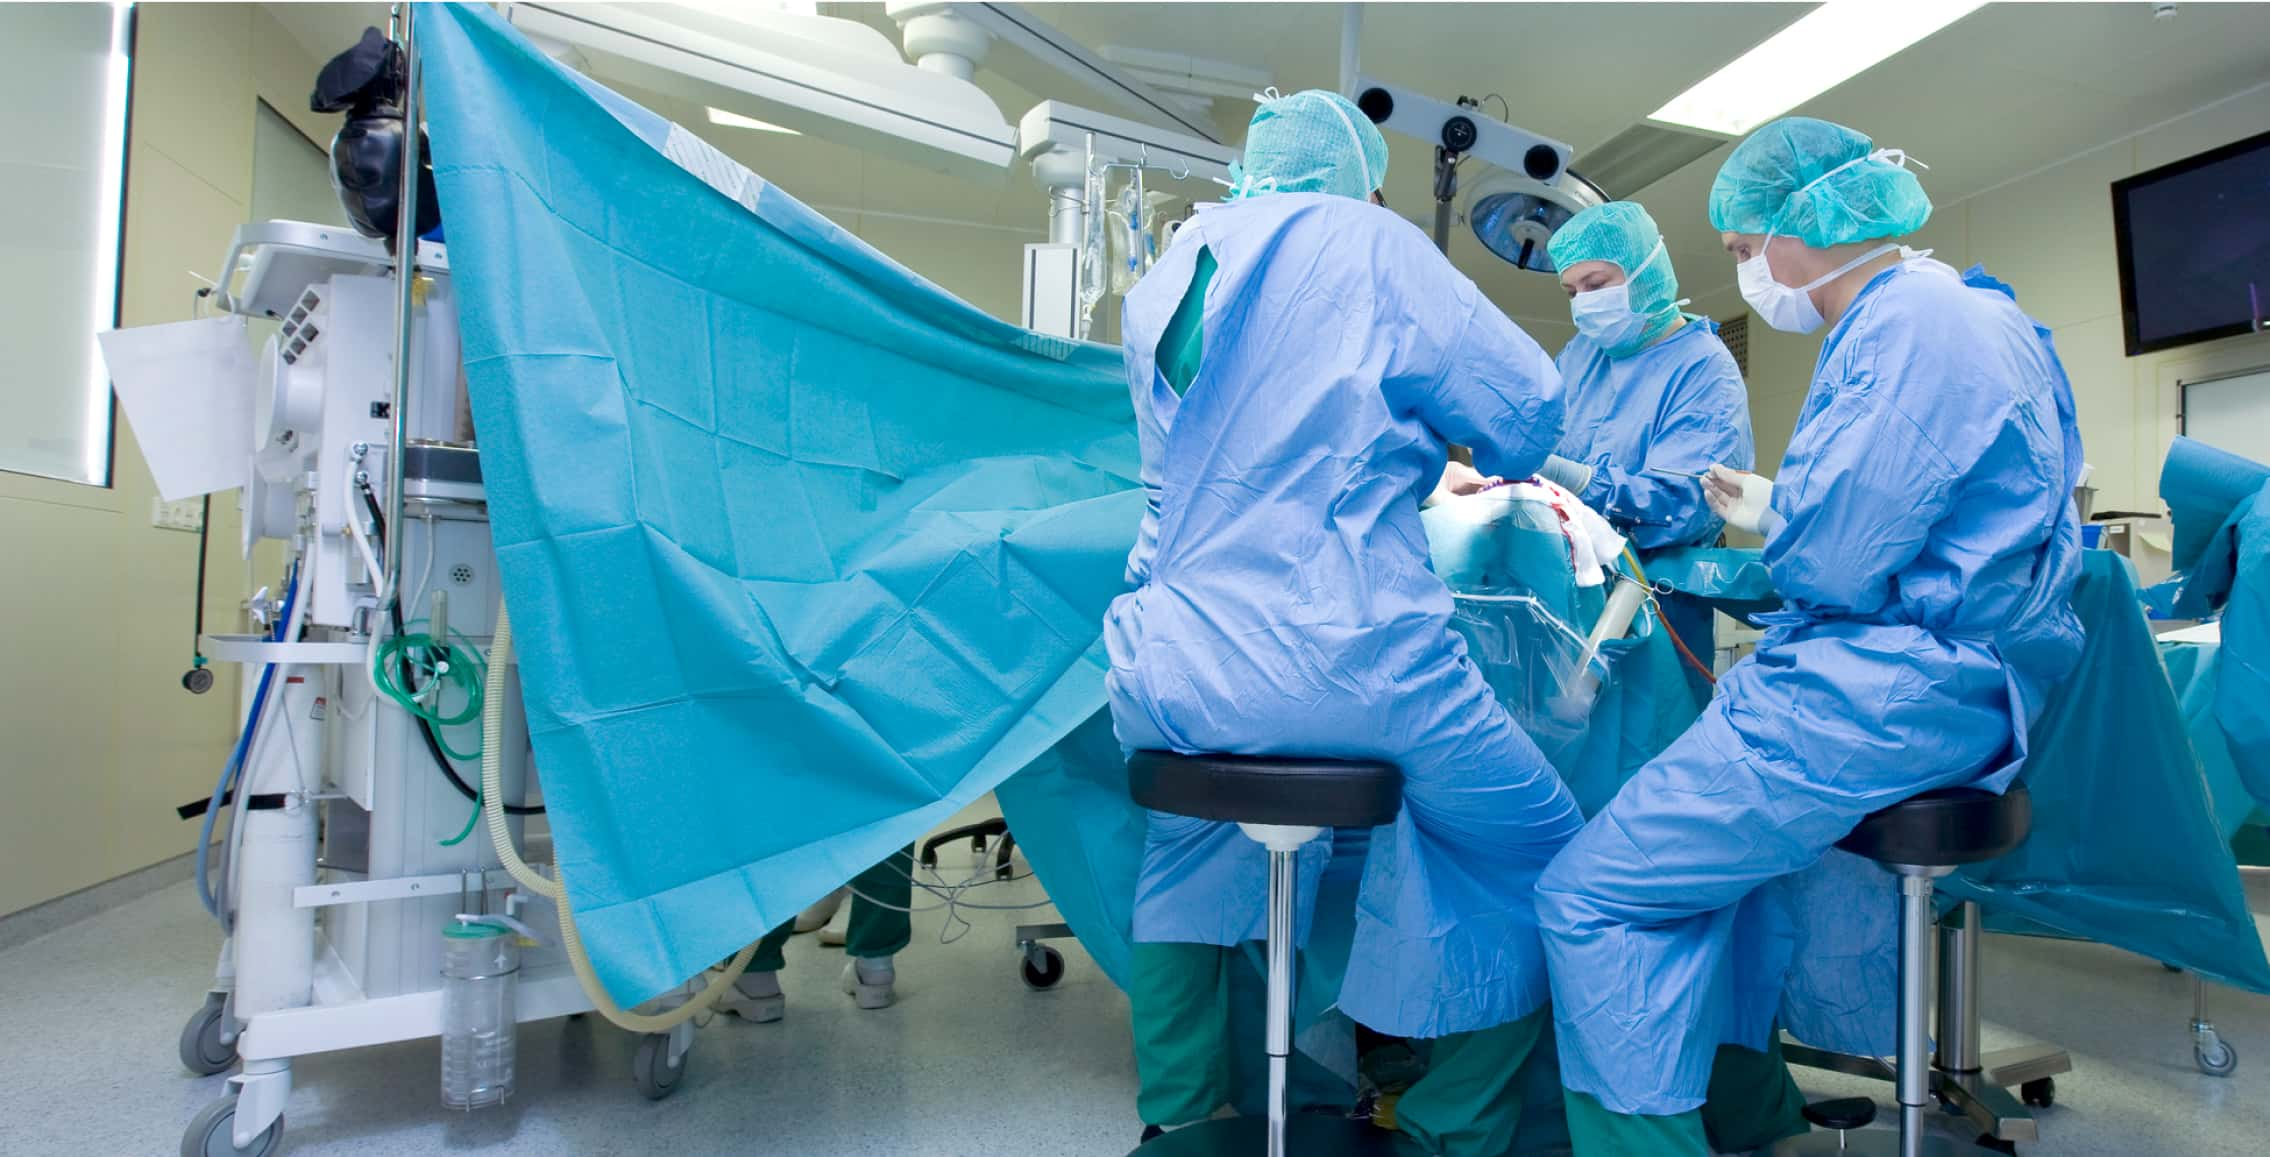 Image of three surgeons performing a surgery.